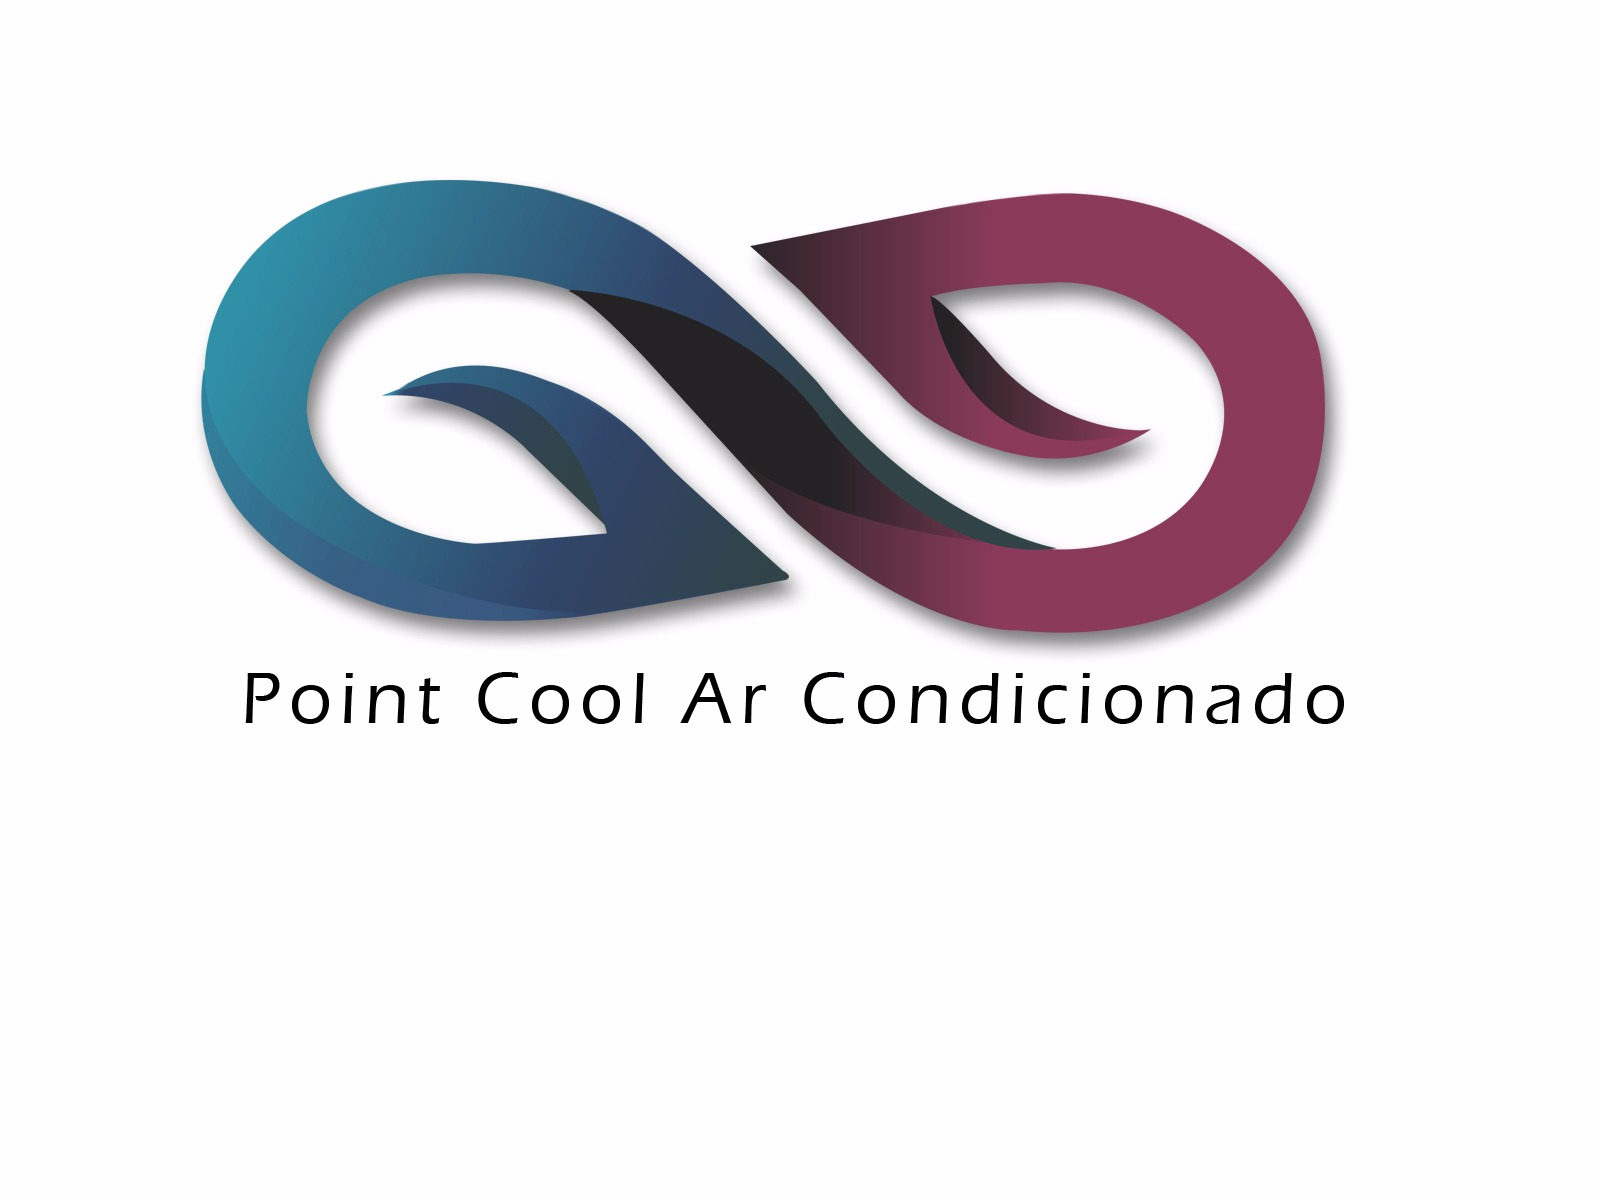 Point Cool